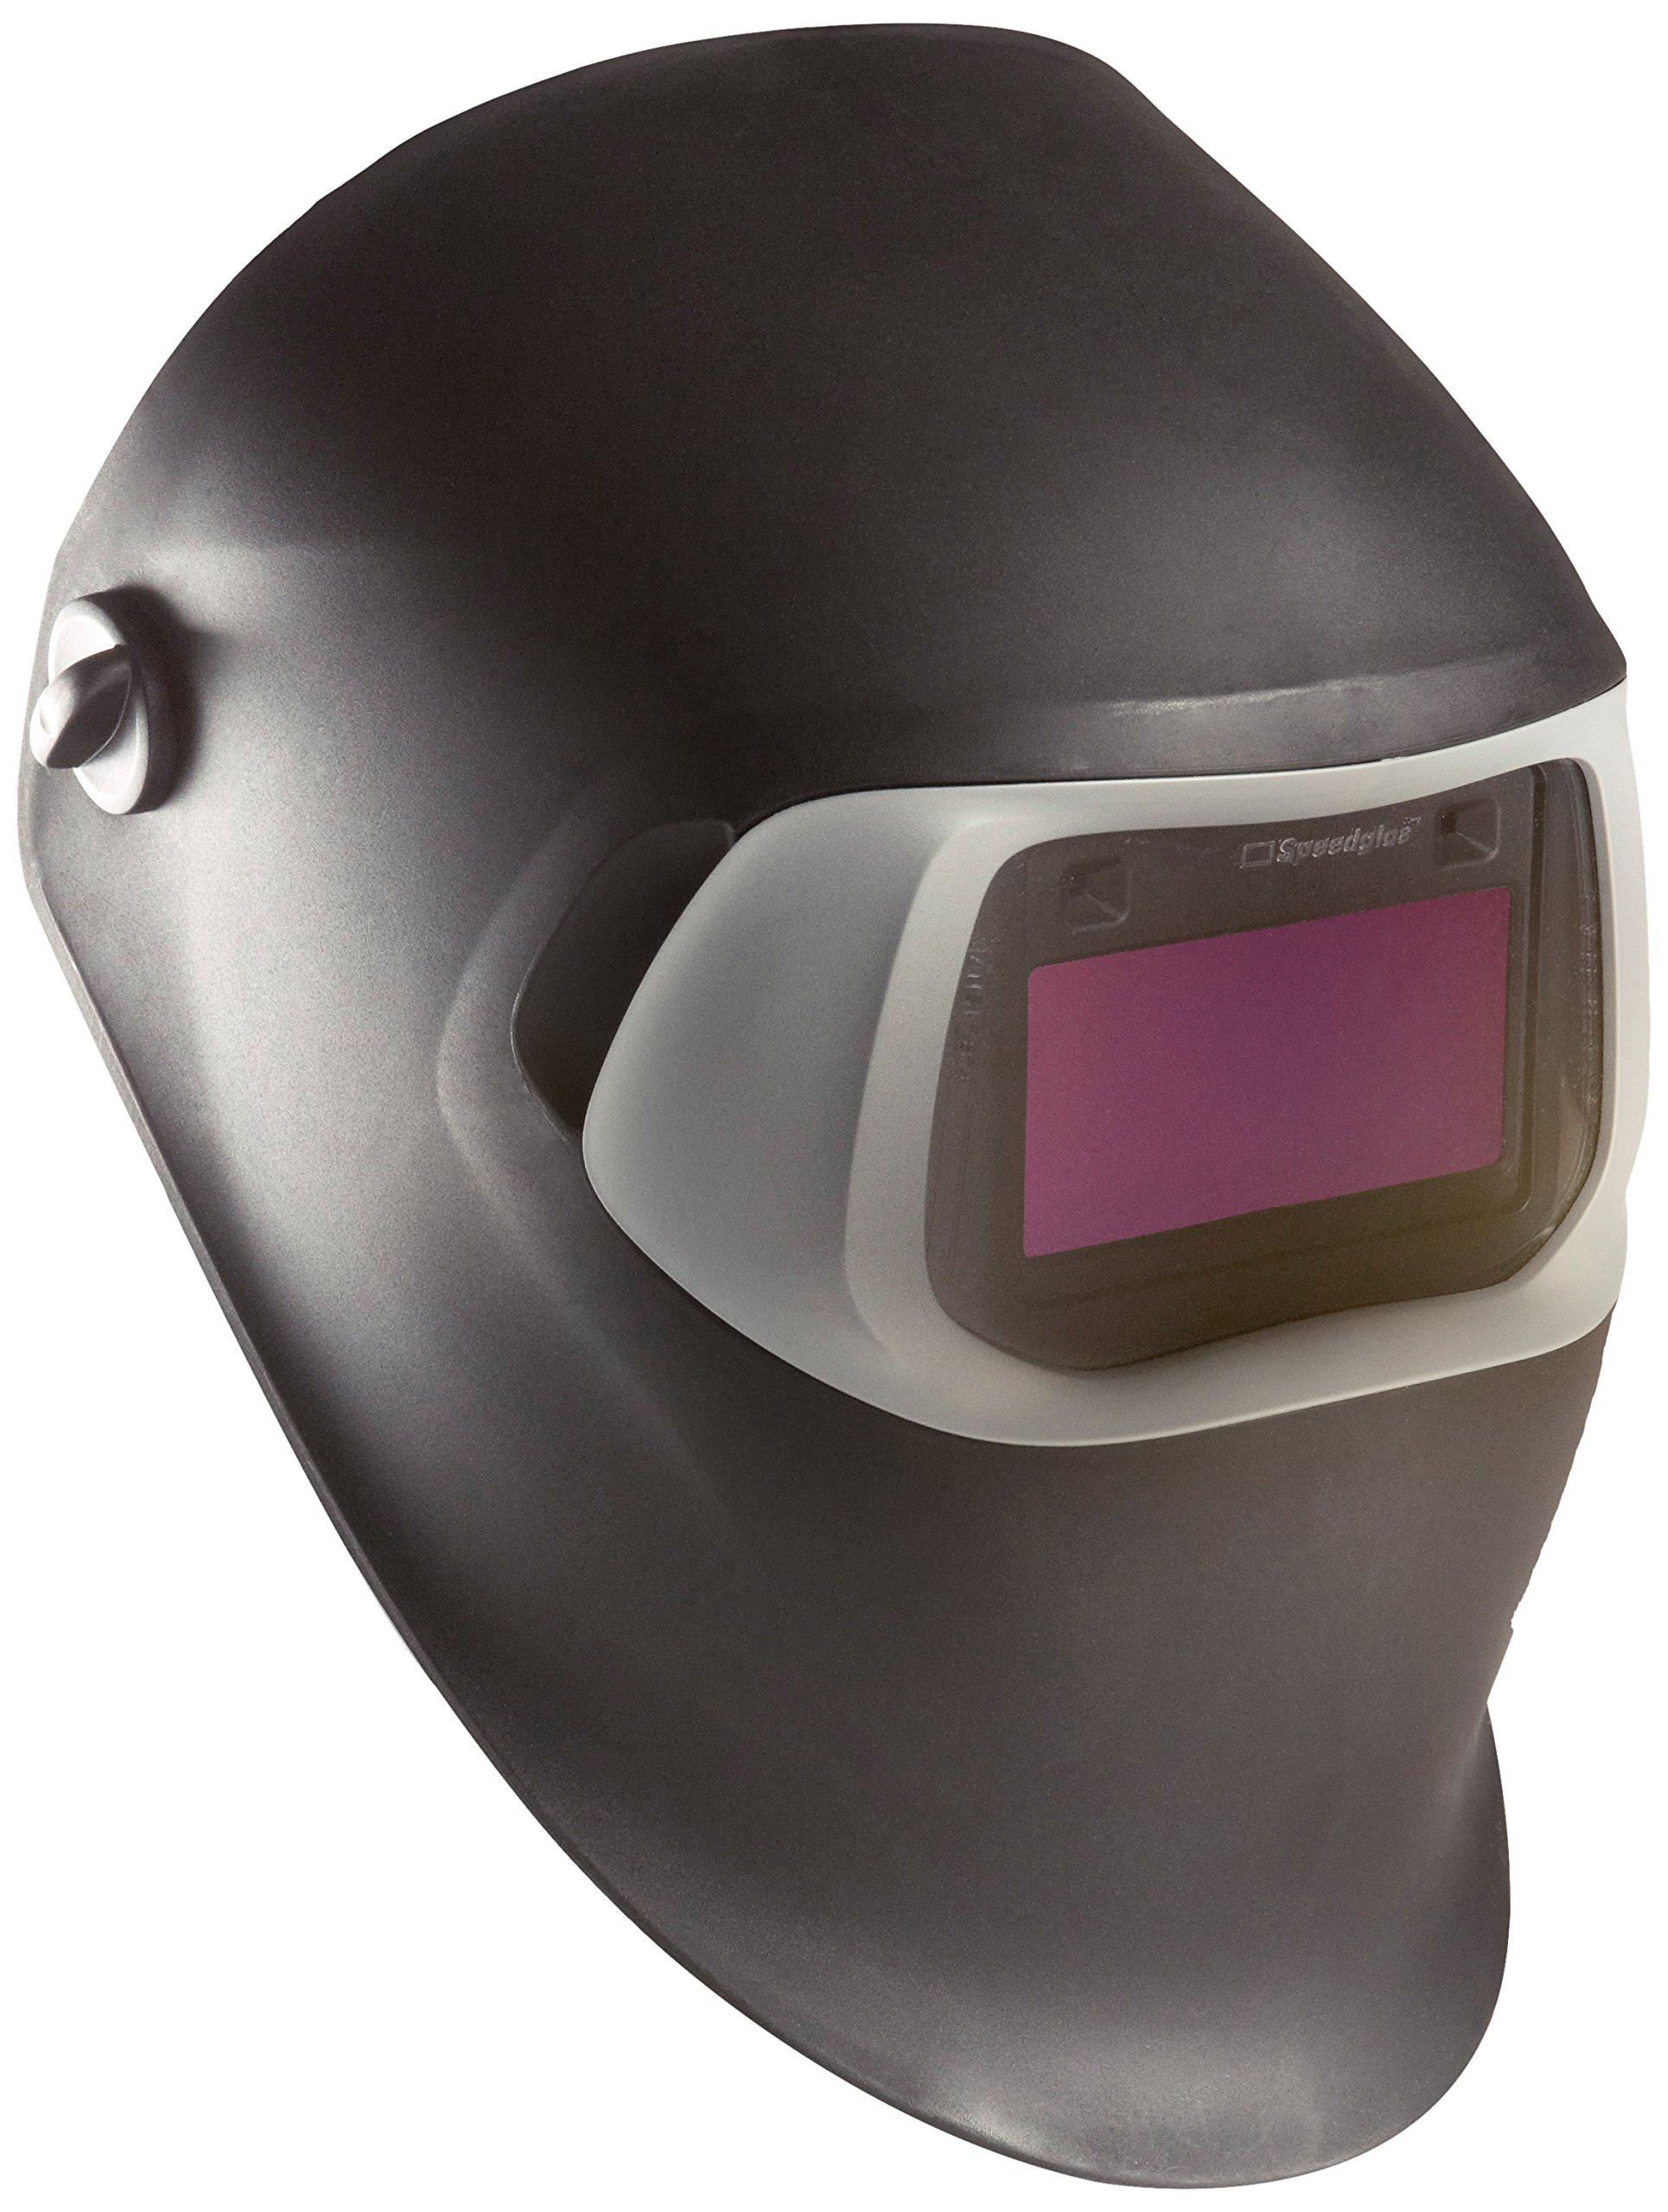 5fb30de0625 Get Quotations · 3M Speedglas Black Welding Helmet 100